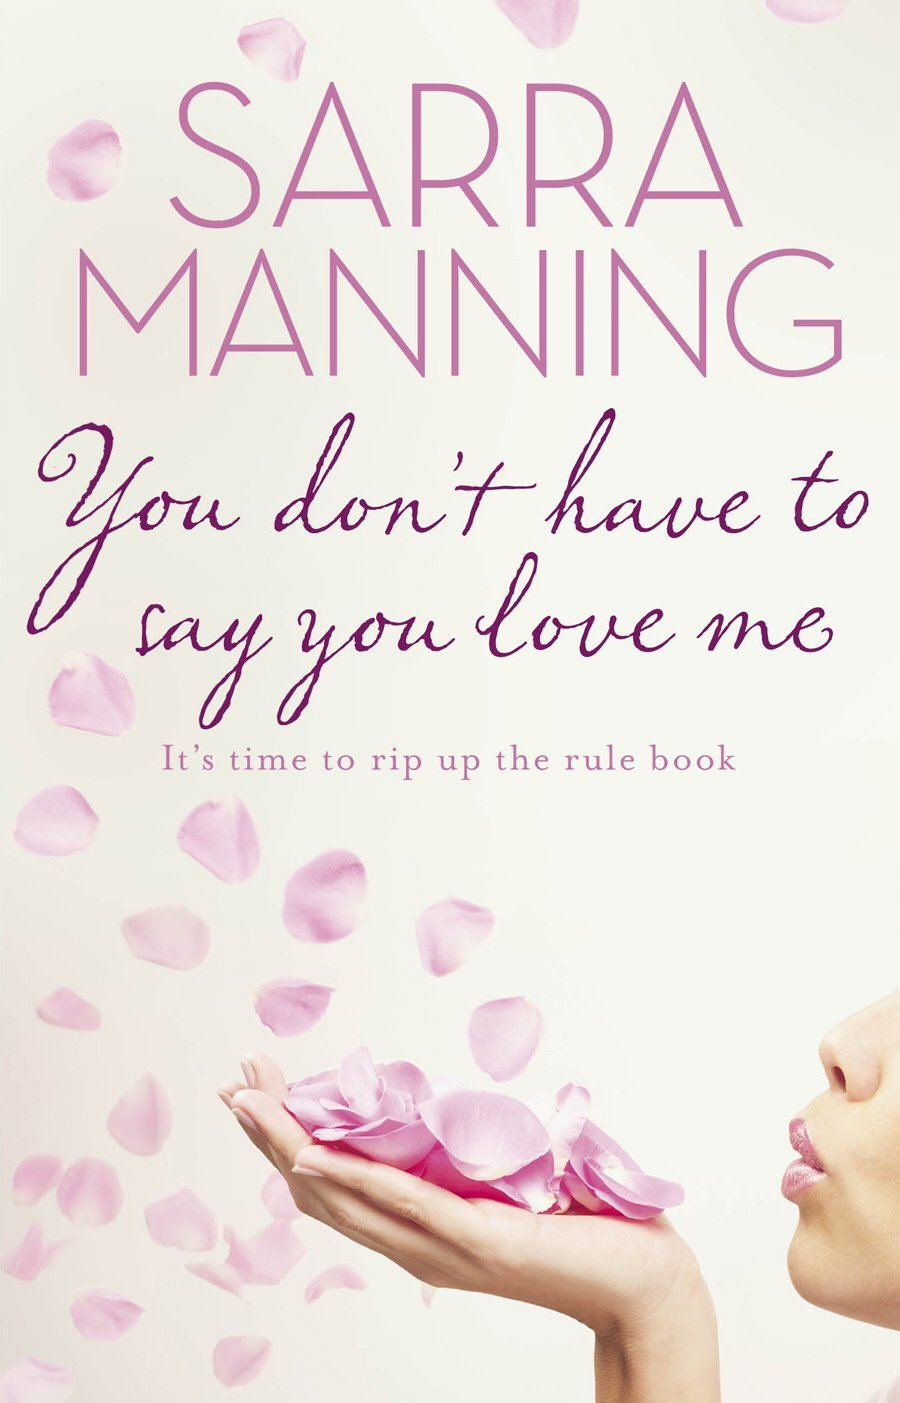 You Don't Have to Say You Love Me by Sarra Maning | Clear Eyes, Full Shelves